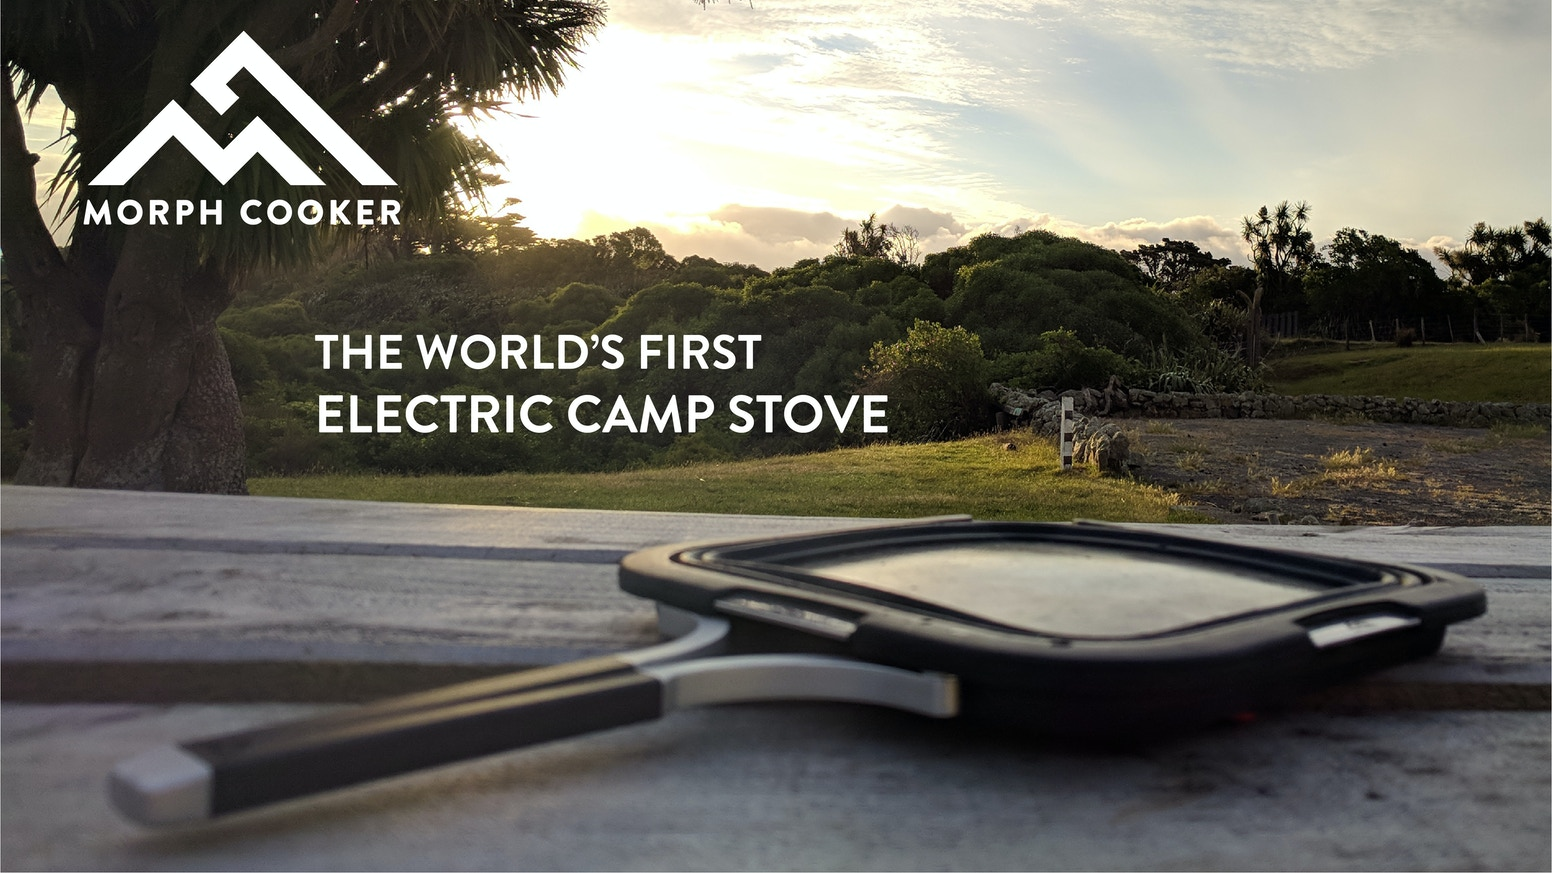 morphcooker the world s first electric camp stove by alex